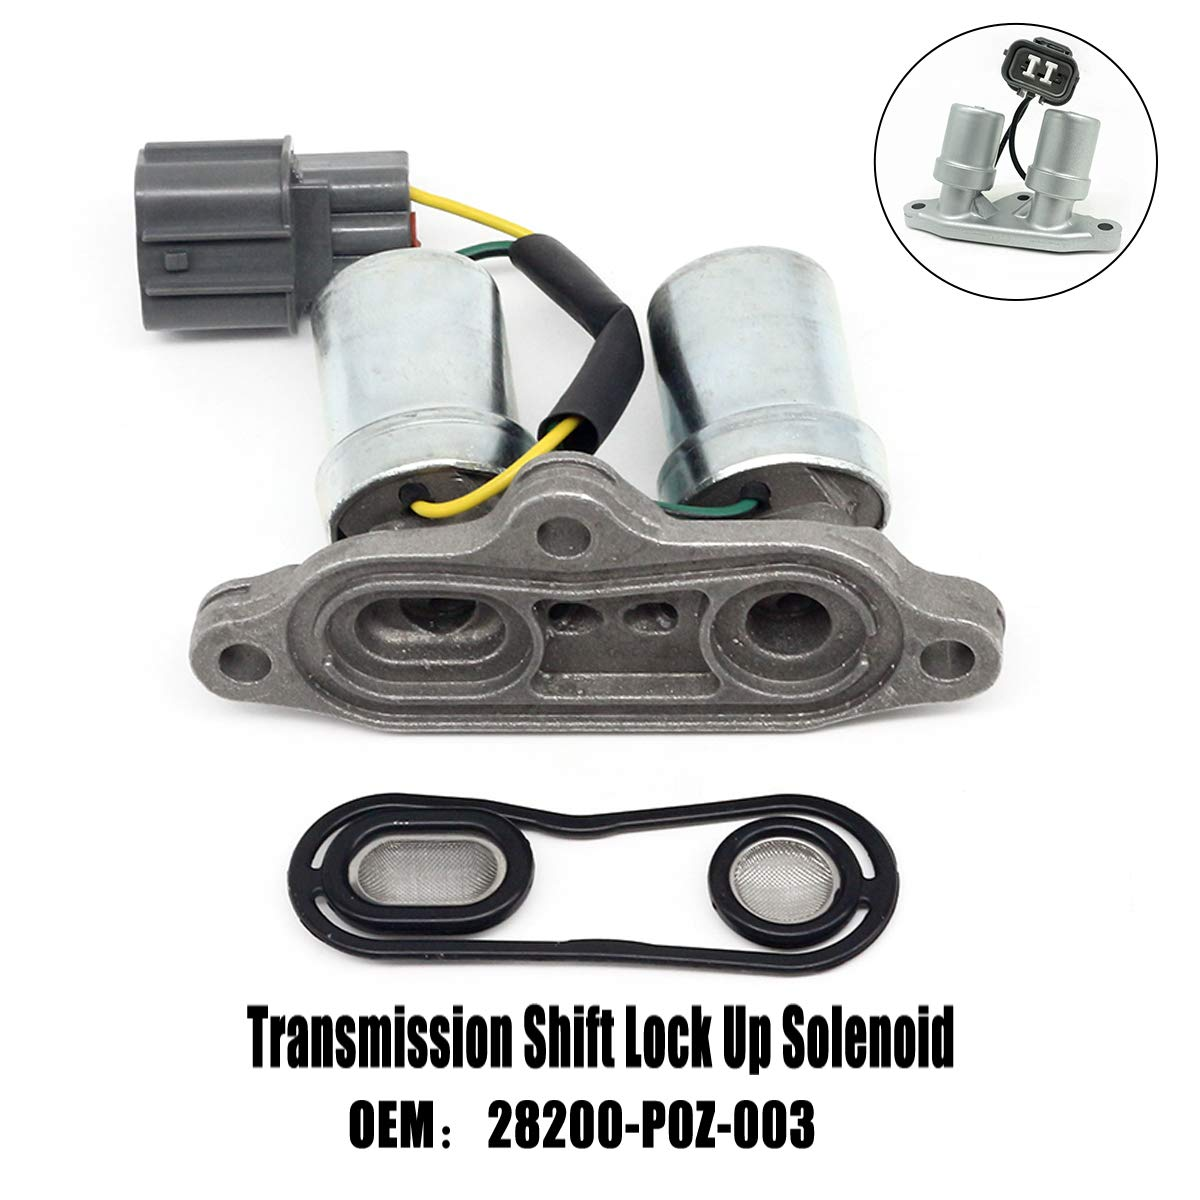 28200-p0z-003 Transmission Shift Solenoid Replacement for 1998 94-97 98 2002 Honda Odyssey Acura Accord Acura CL Torque Converter Lock-Up Solenoids transmission Control Solenoid module cr honda crv 00